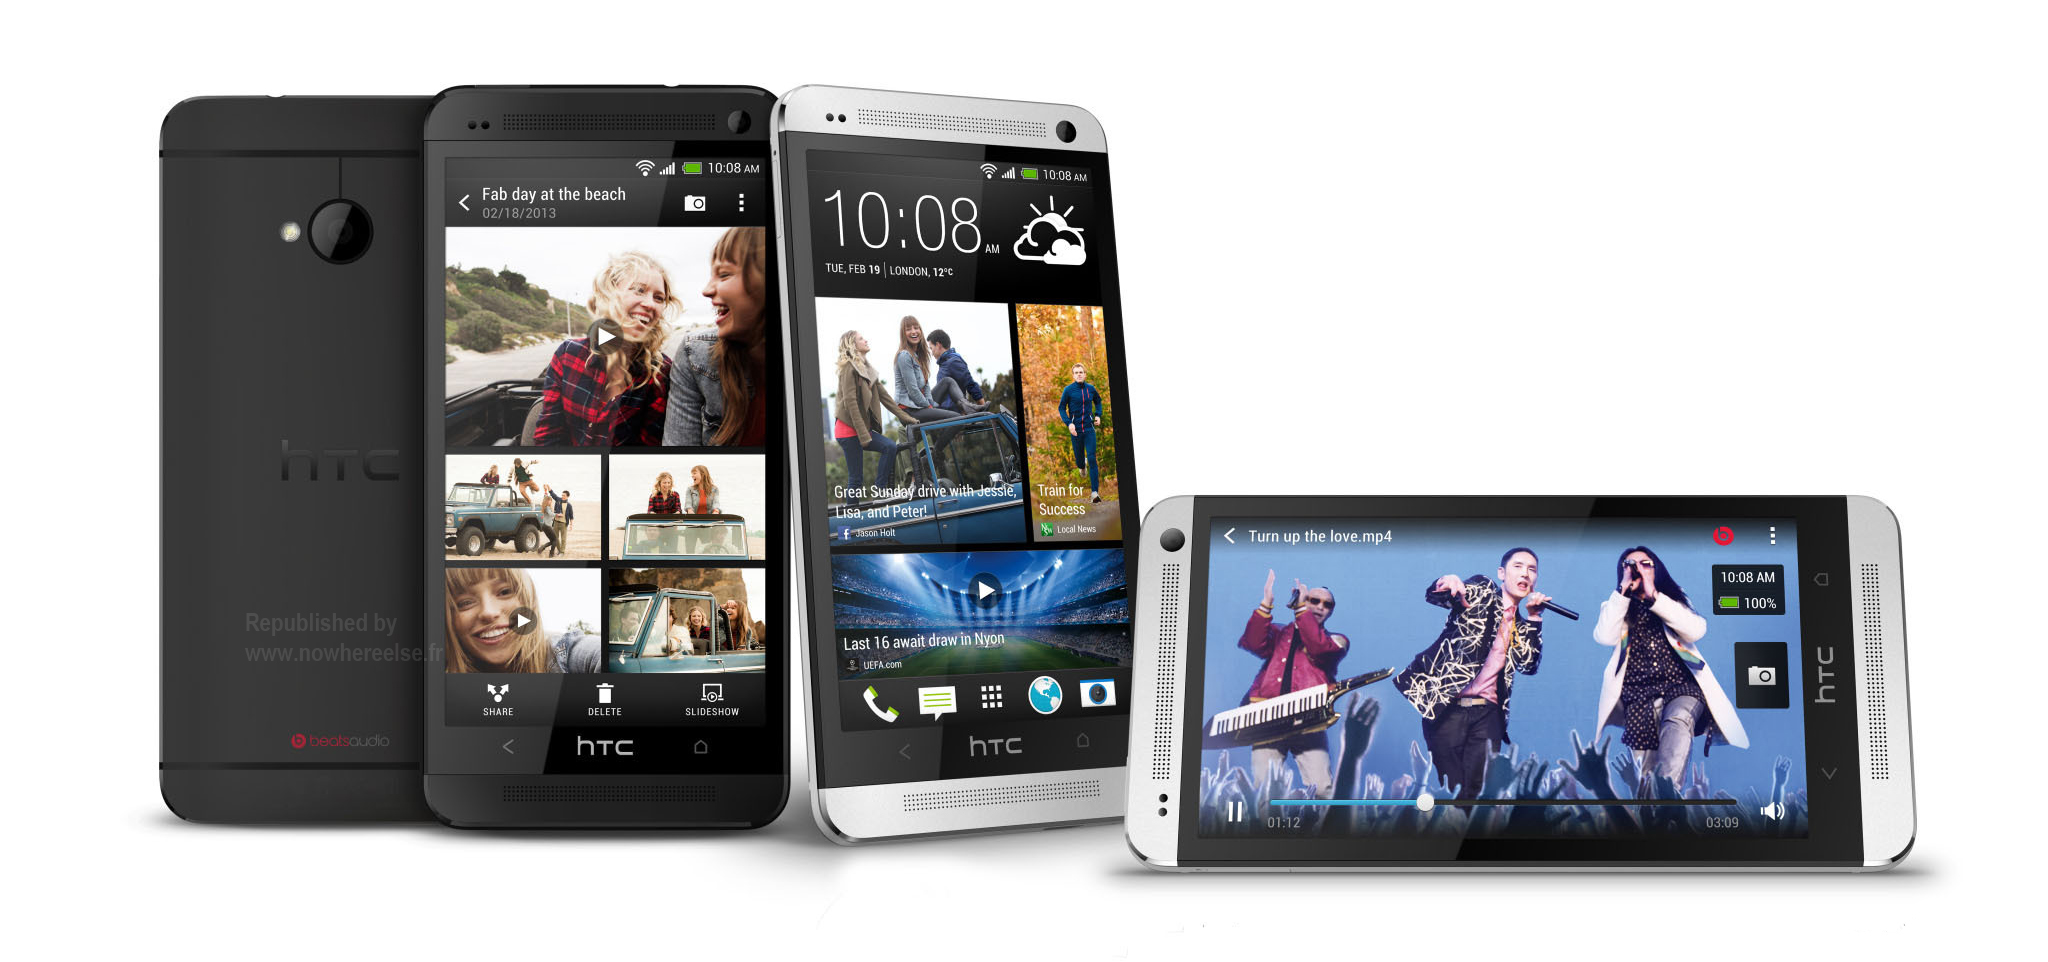 htc one (M7)